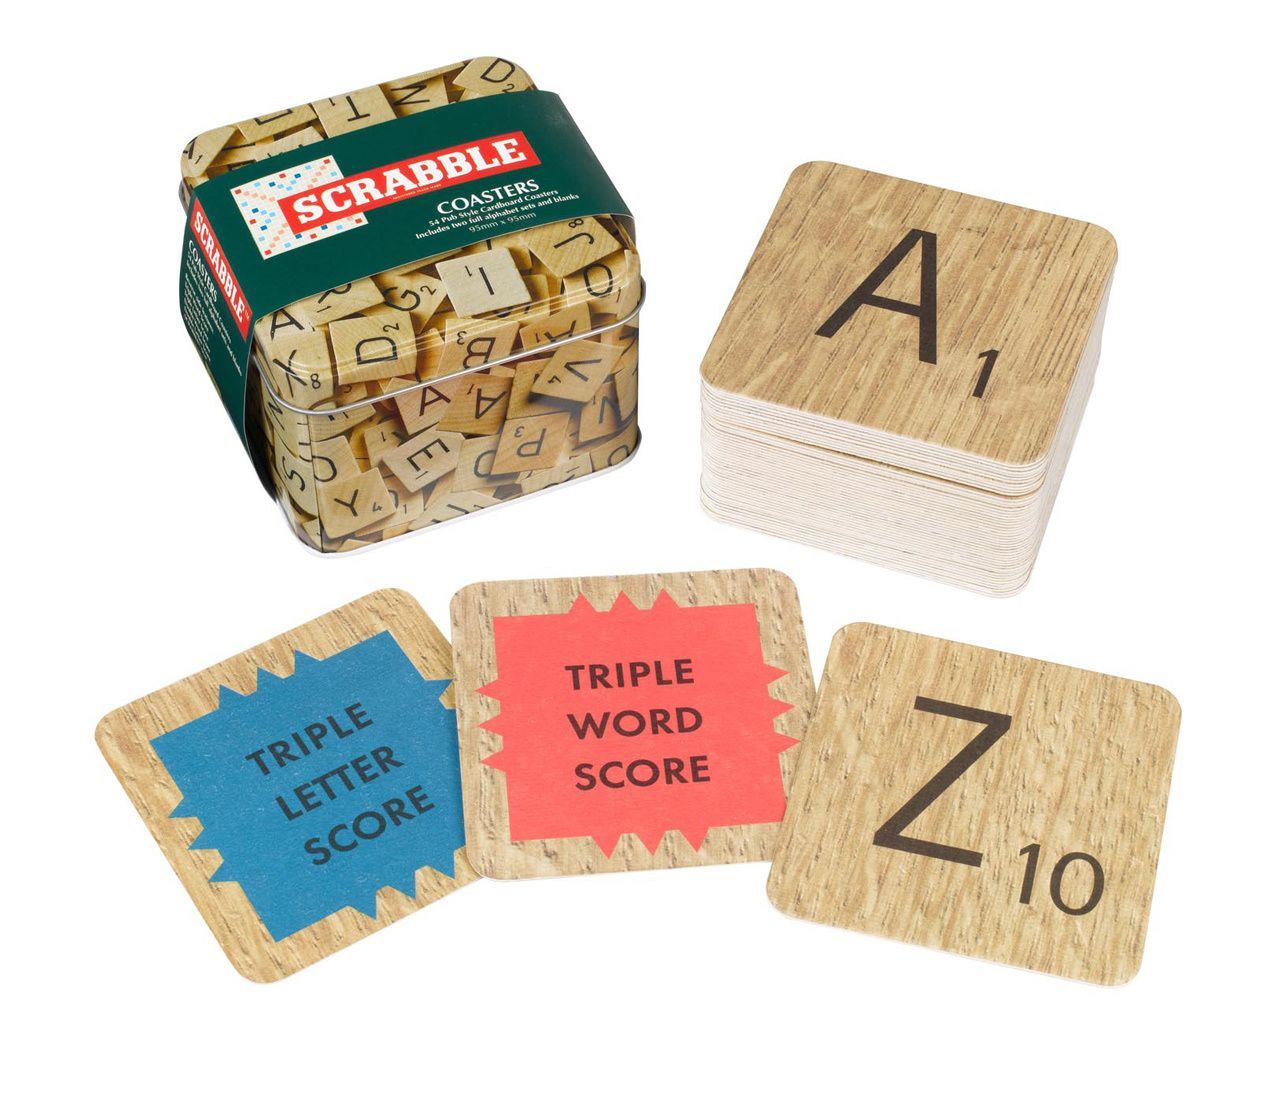 NotTheUsual.co.uk Scrabble Coasters, £12.95 (http